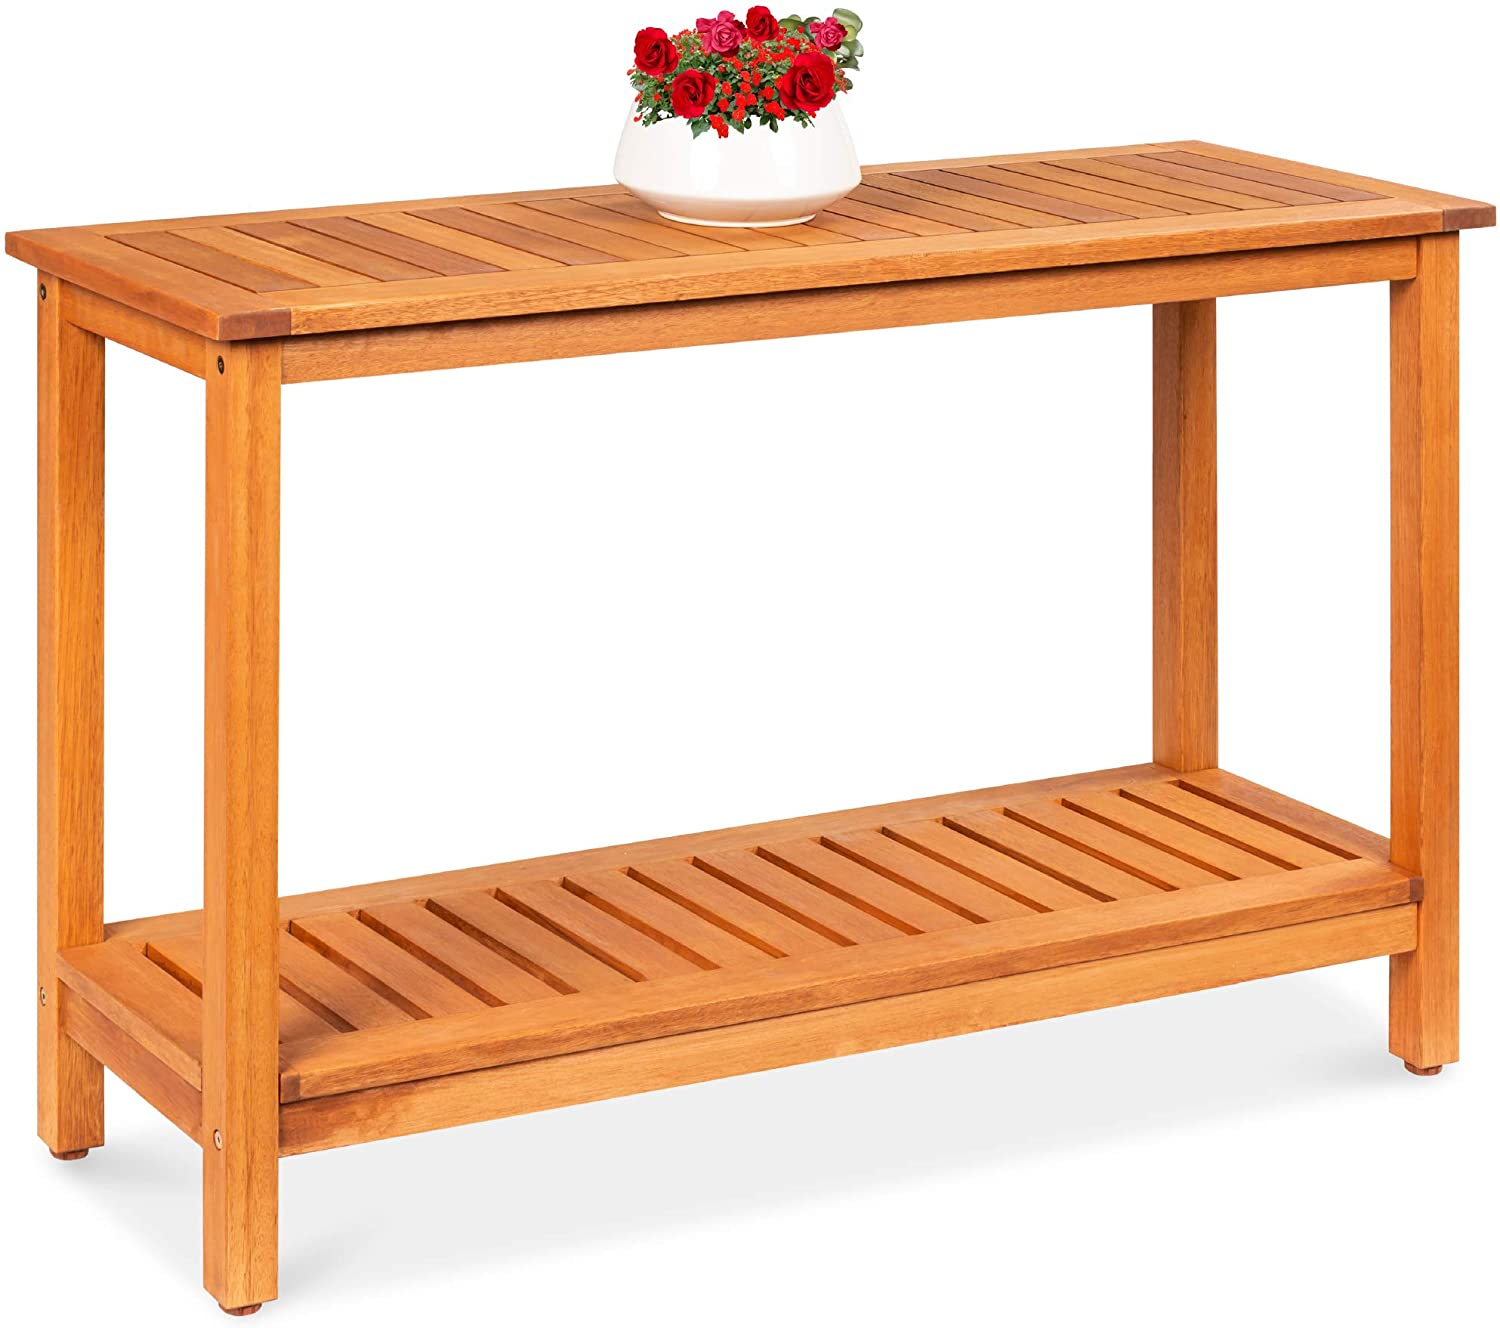 Best Choice Products 48in 2 Shelf Eucalyptus Wood Console Table Indoor Outdoor Multifunctional Buffet Bar Storage Organizer W Natural Finish Sliders Garden Outdoor